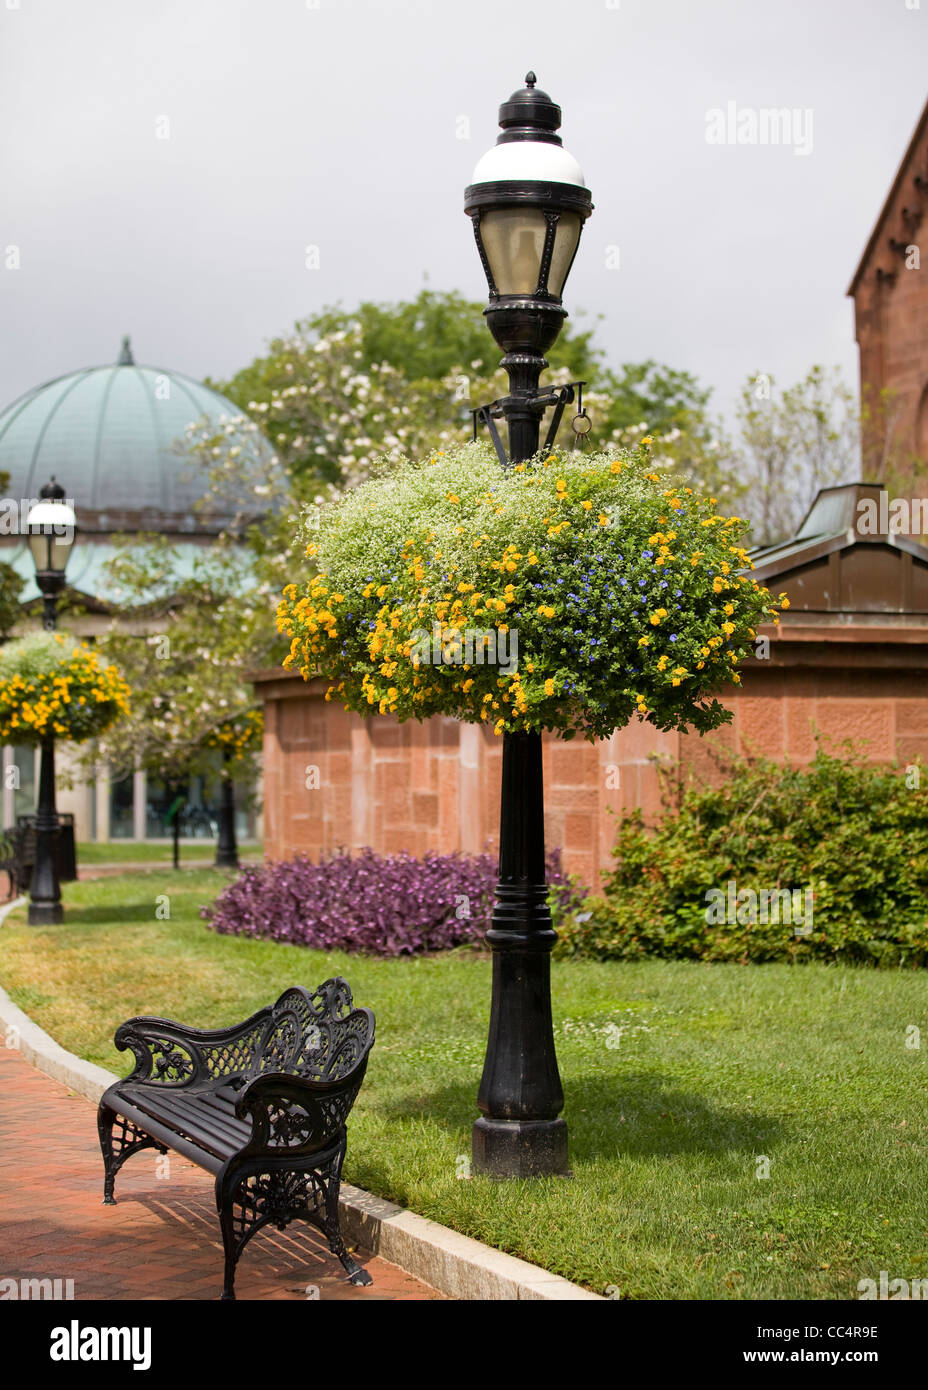 Hanging Planter Baskets On Street Lamp Post Stock Photo  41902714